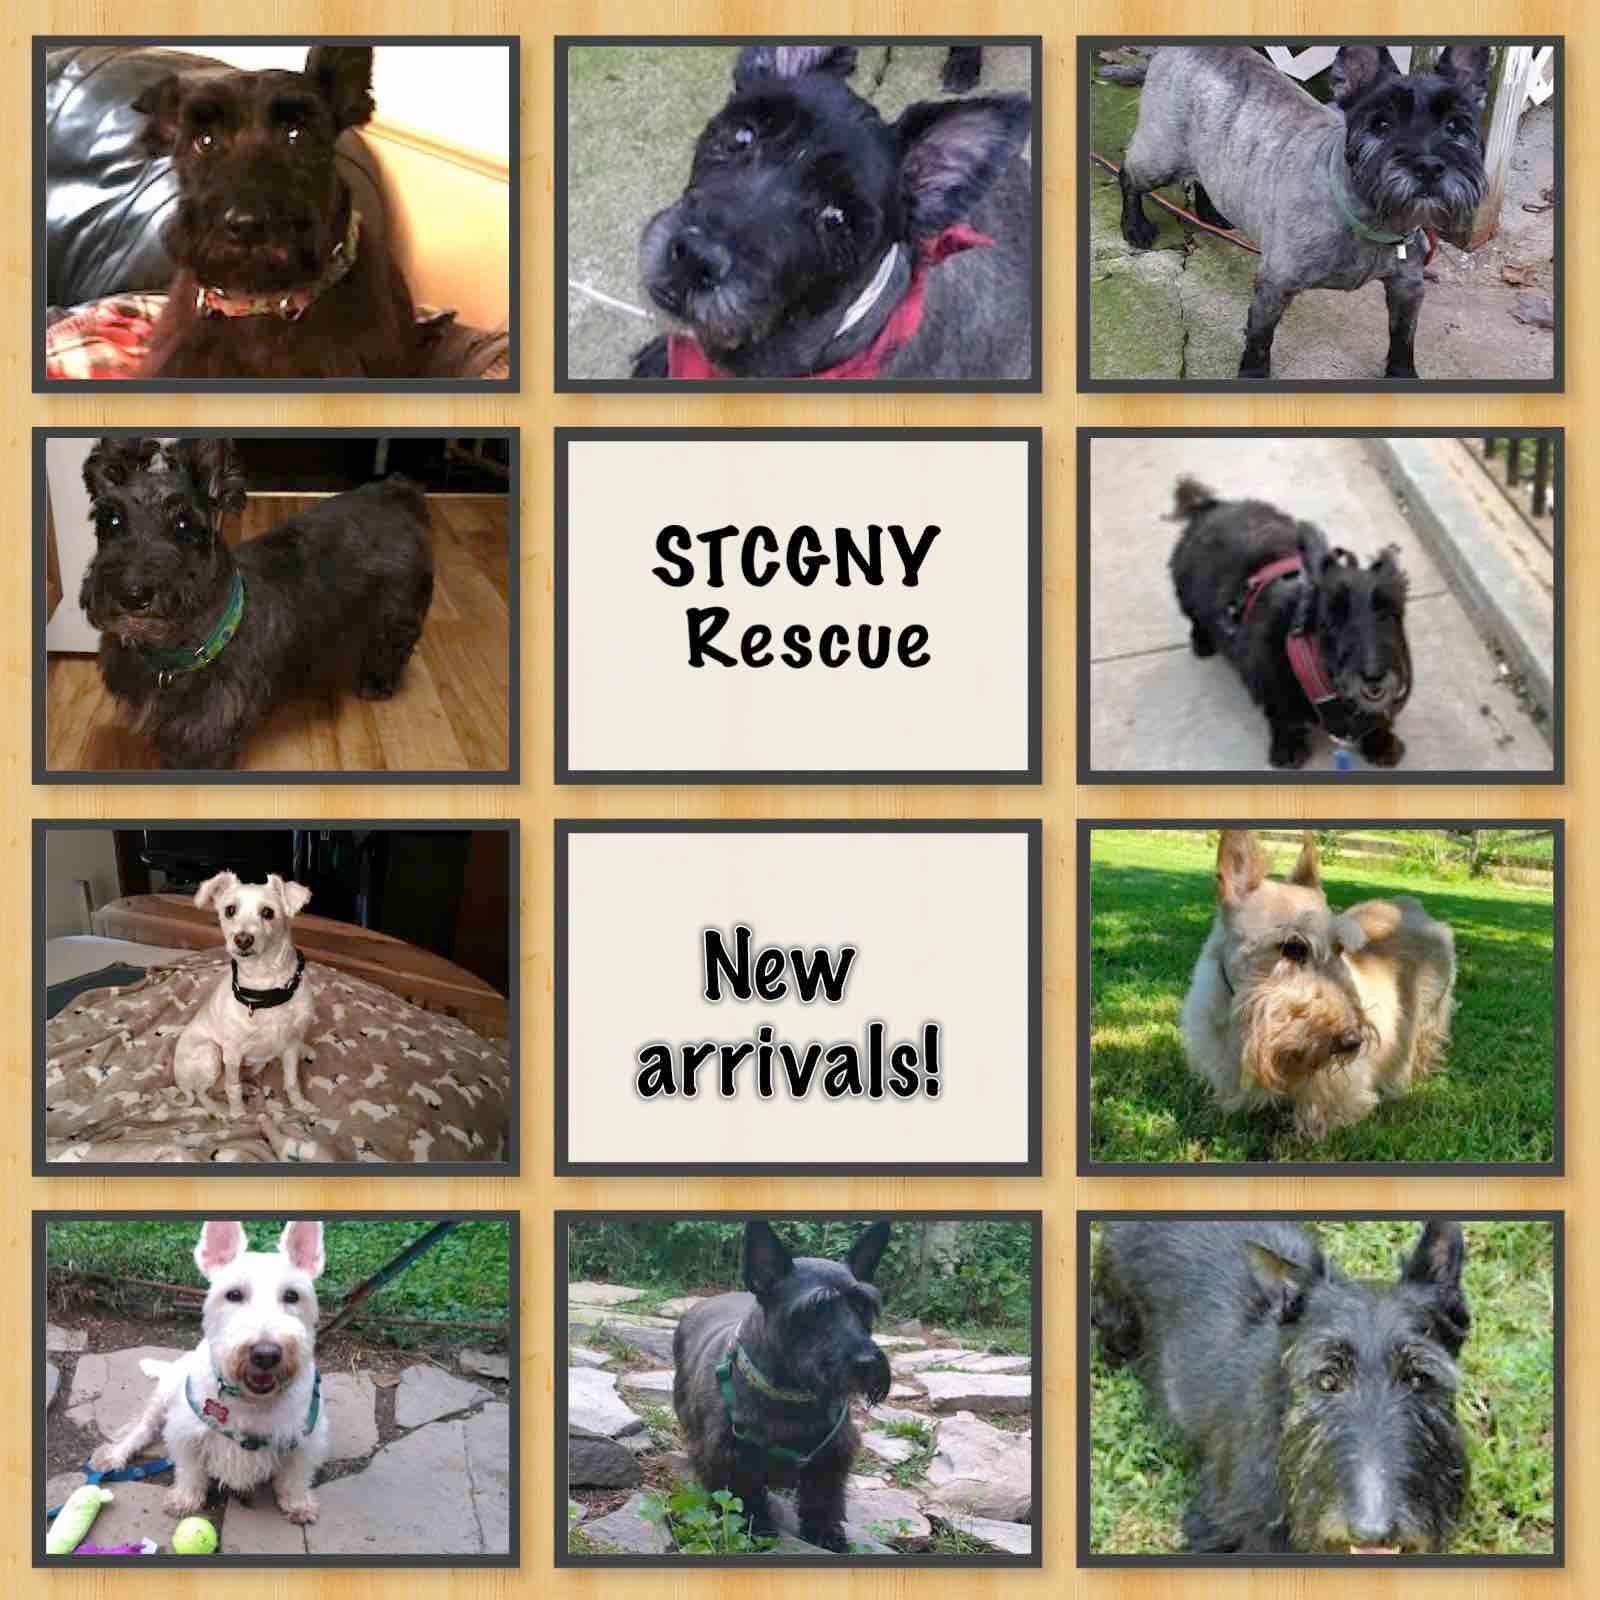 Scottish Terriers being rescued by Scottish Terrier Club of Greater NY, Oct. 1, 2019